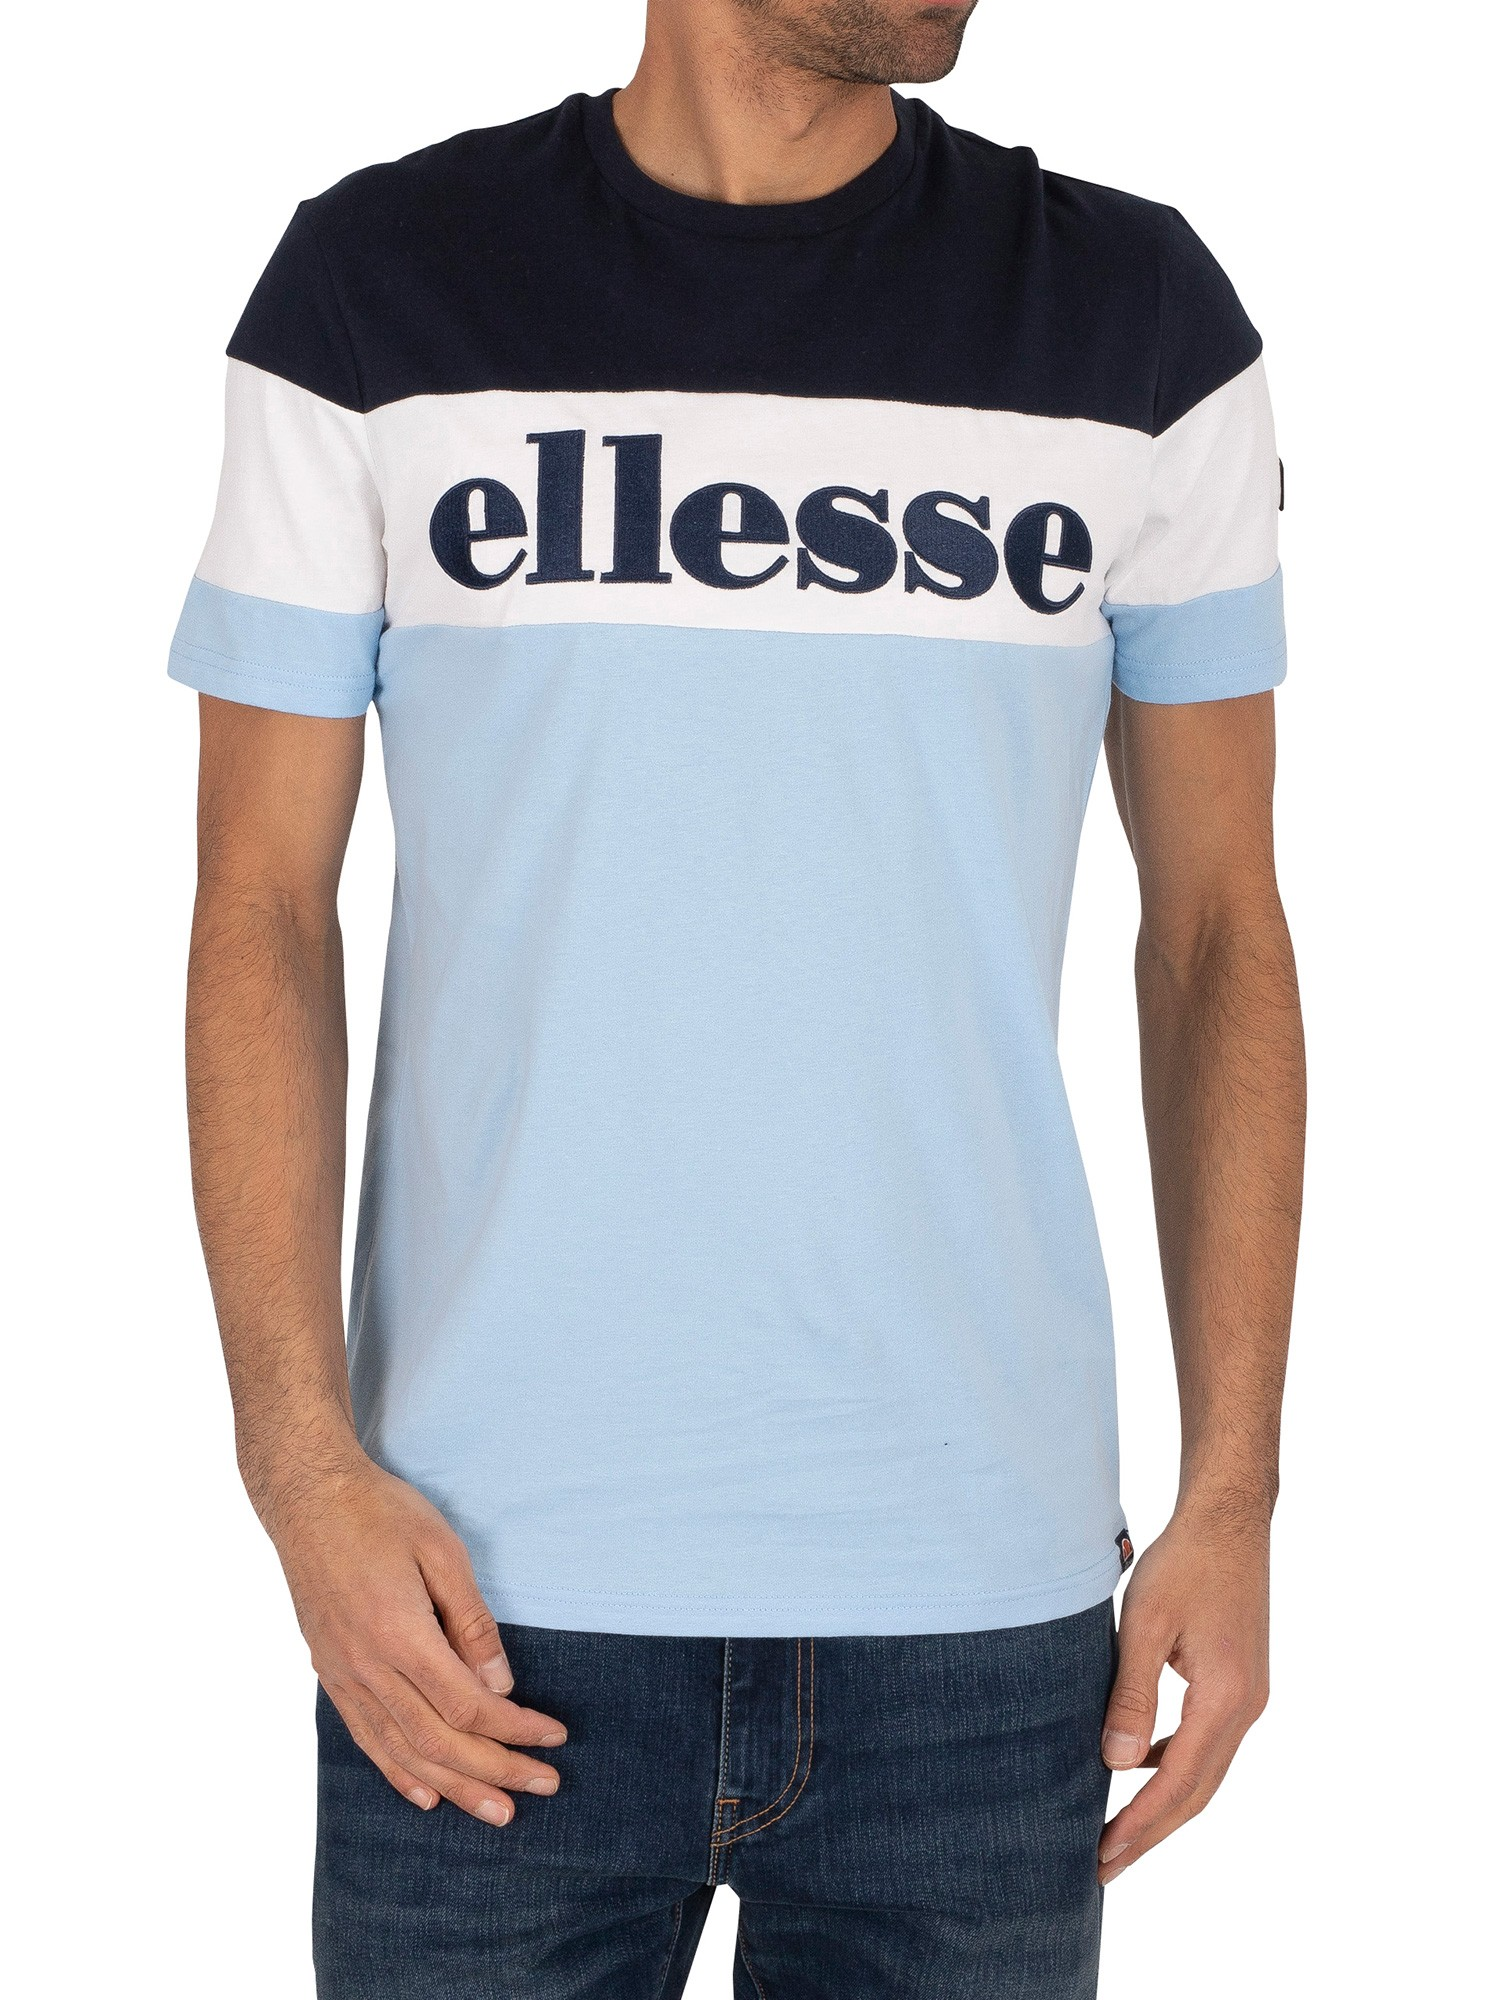 Ellesse Punto T-Shirt - Light Blue/Navy